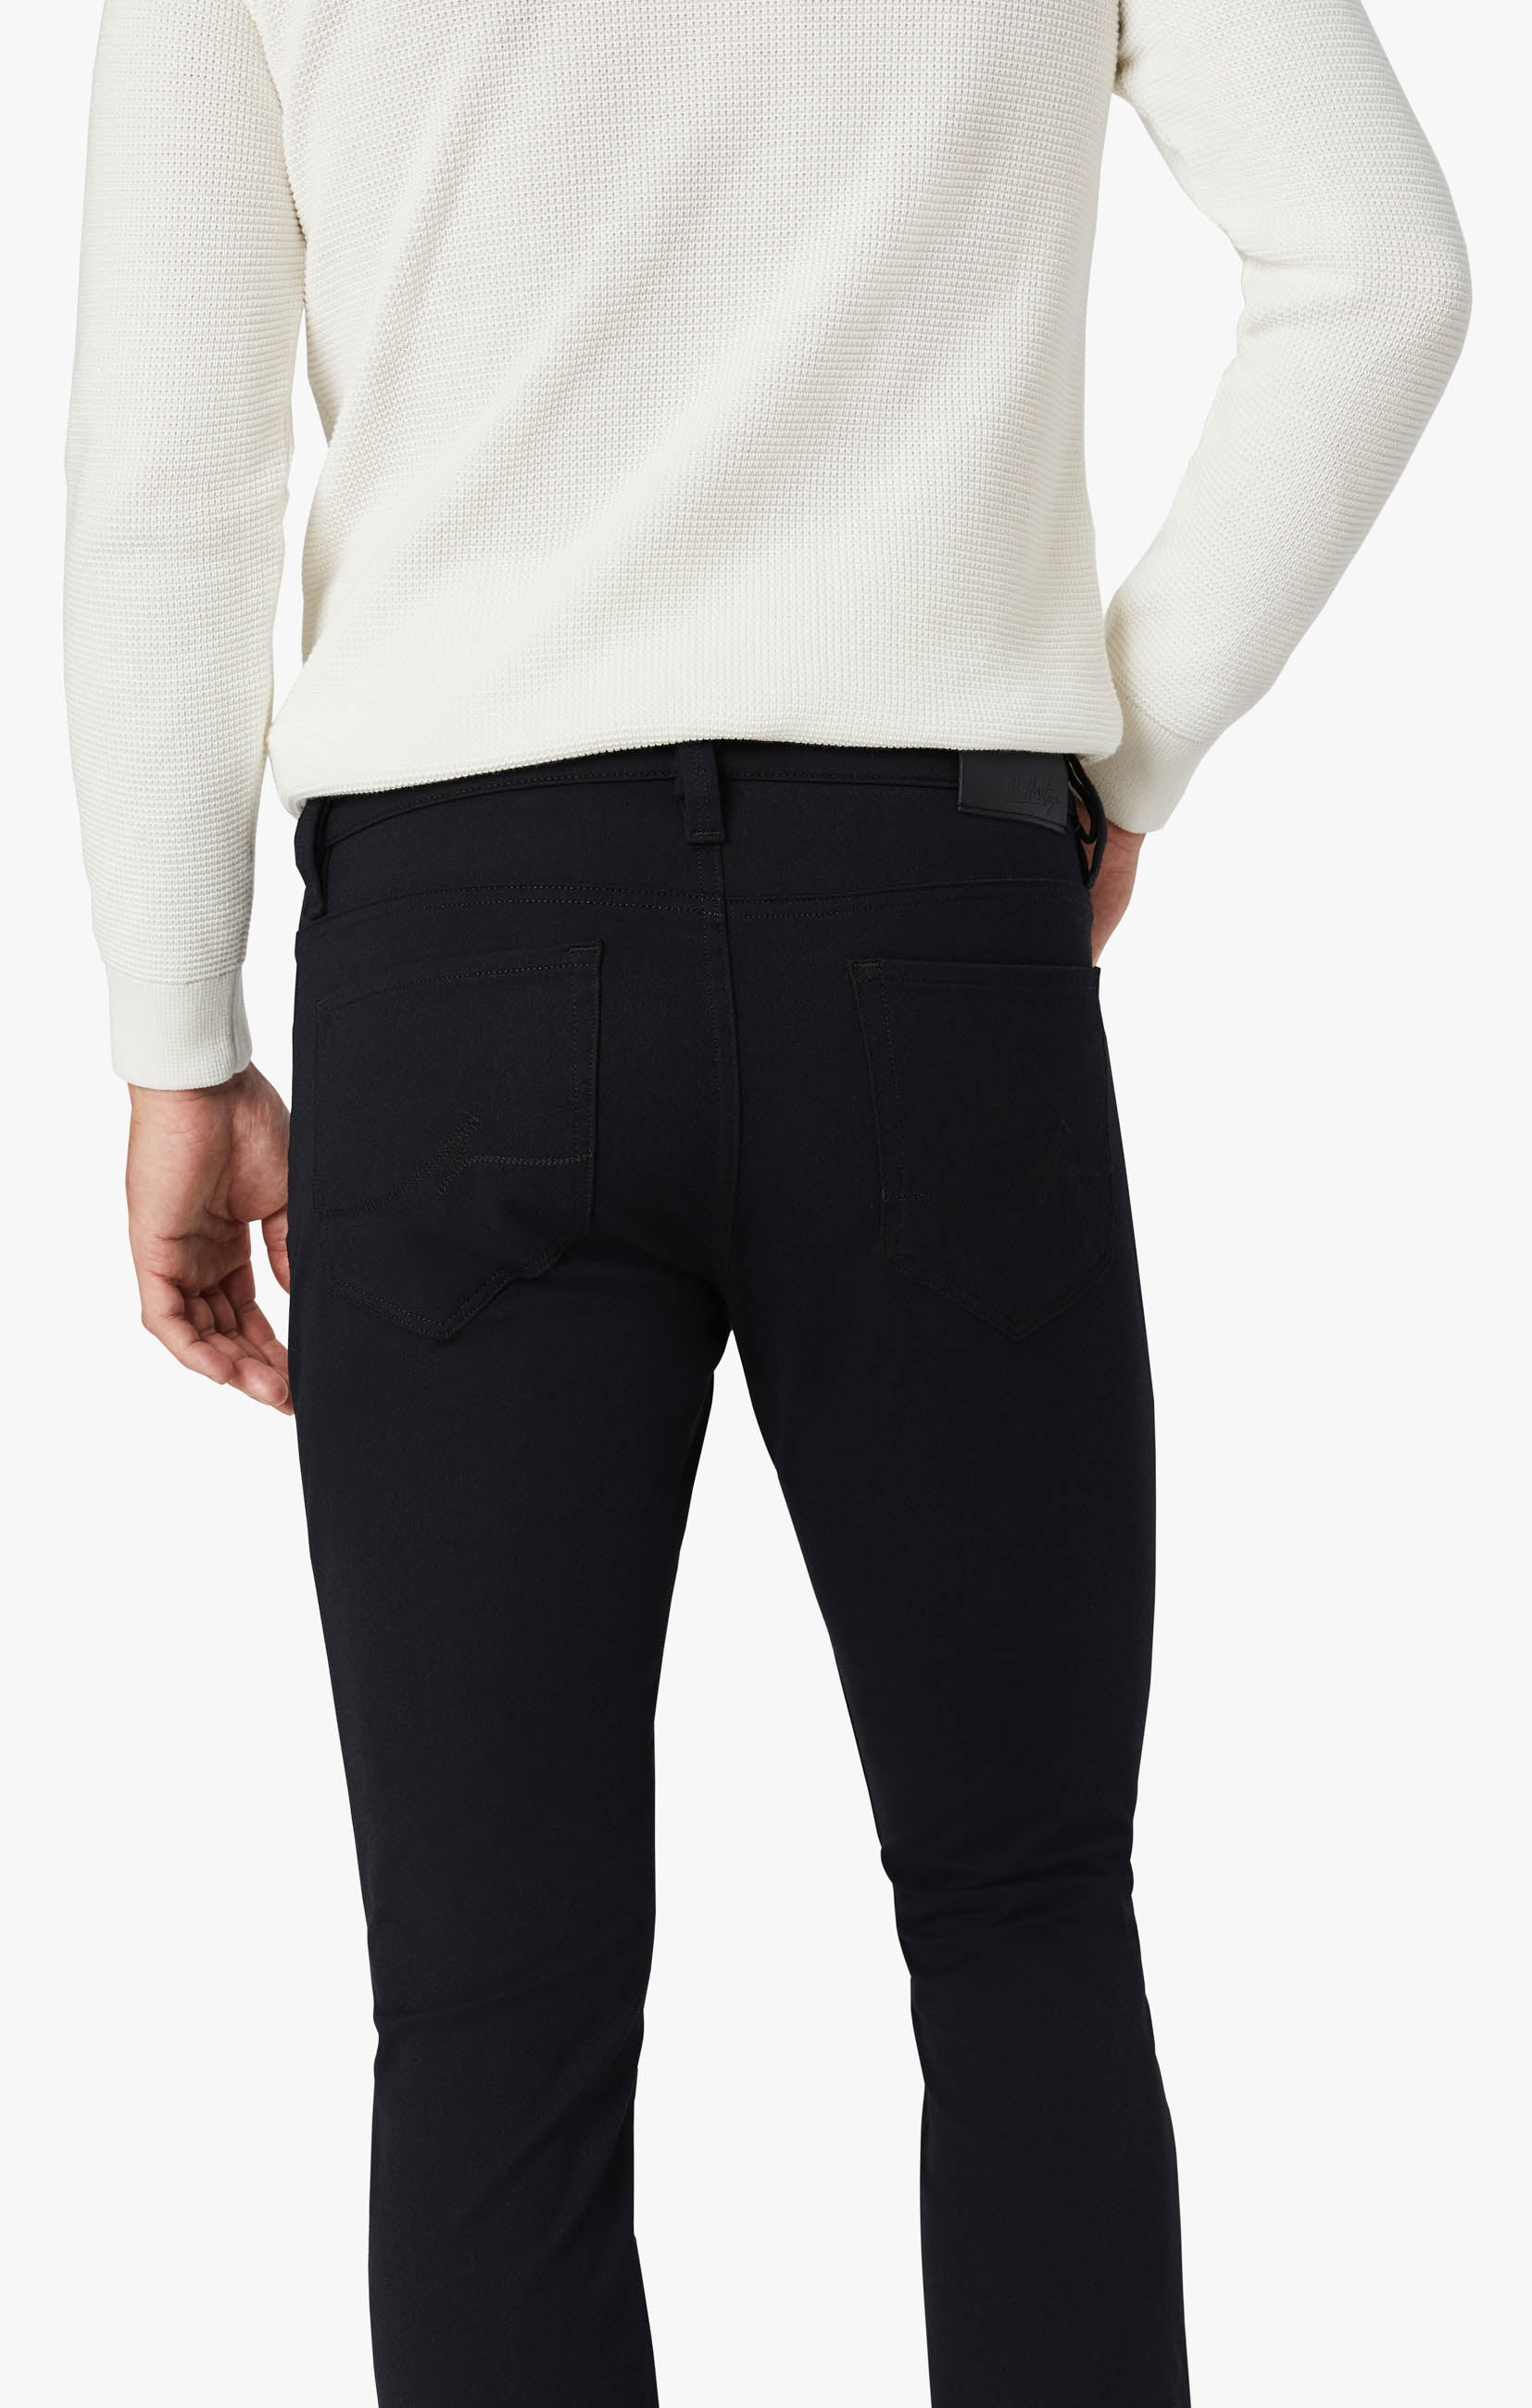 Charisma Classic Fit Pants in Navy Winter Cashmere Image 5